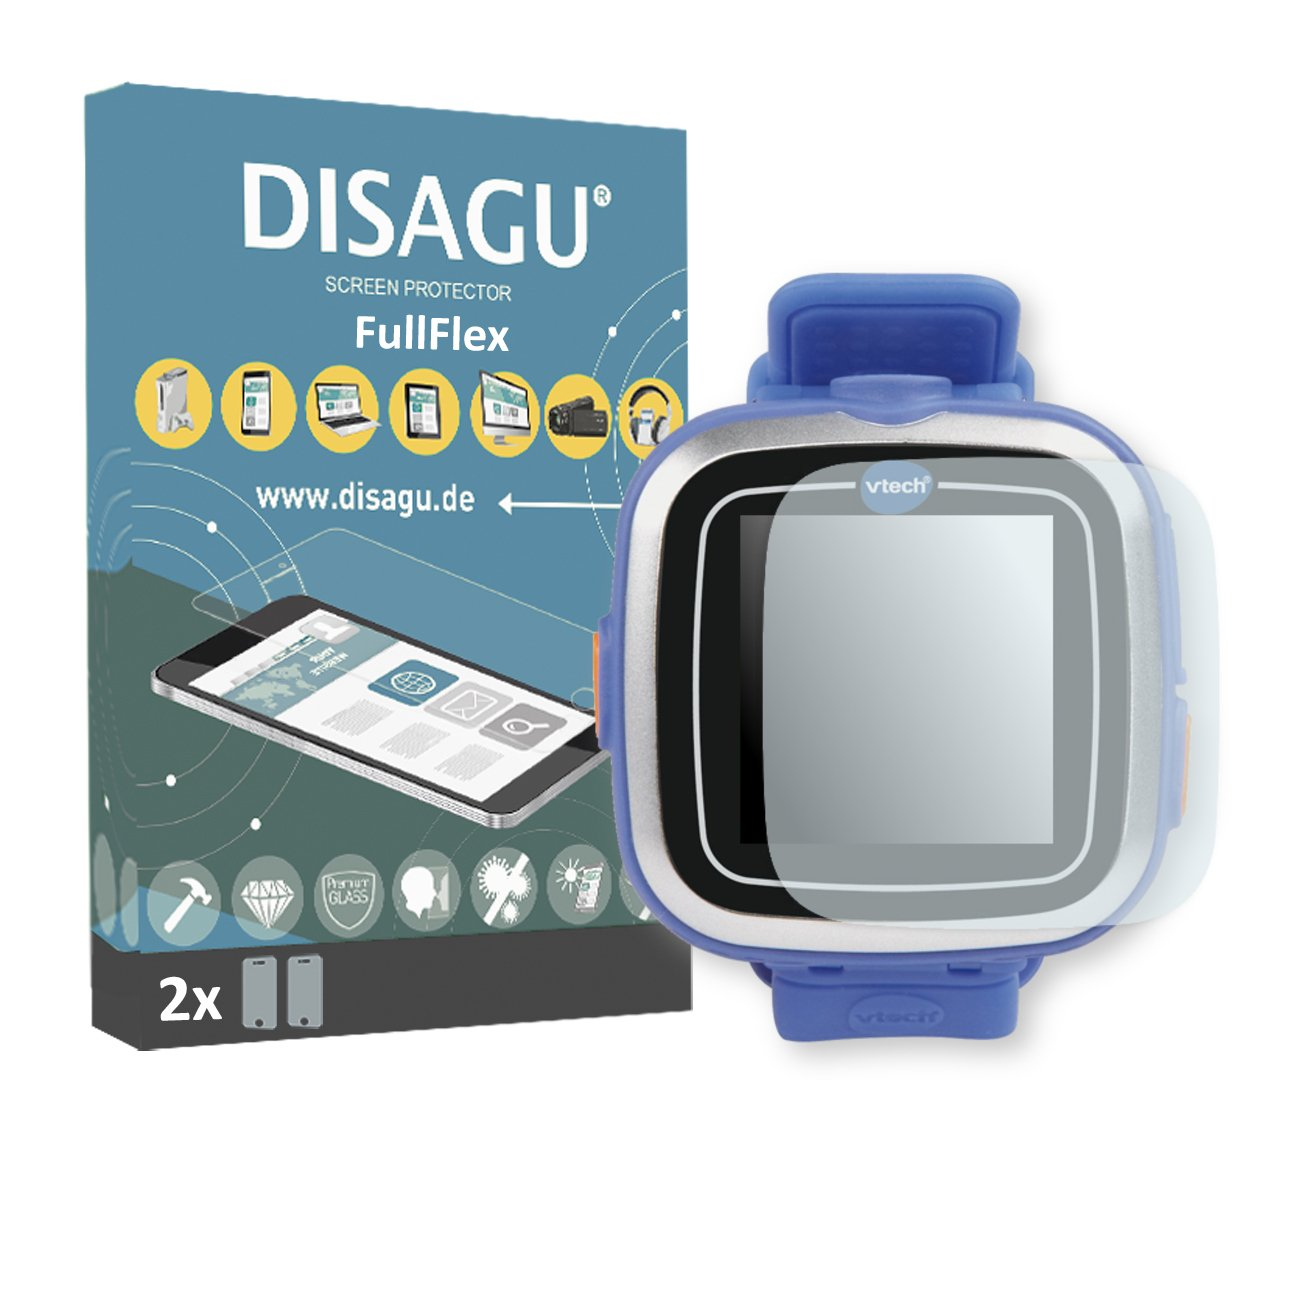 Amazon.com: DISAGU 2 x FullFlex Screen Protector for Vtech ...